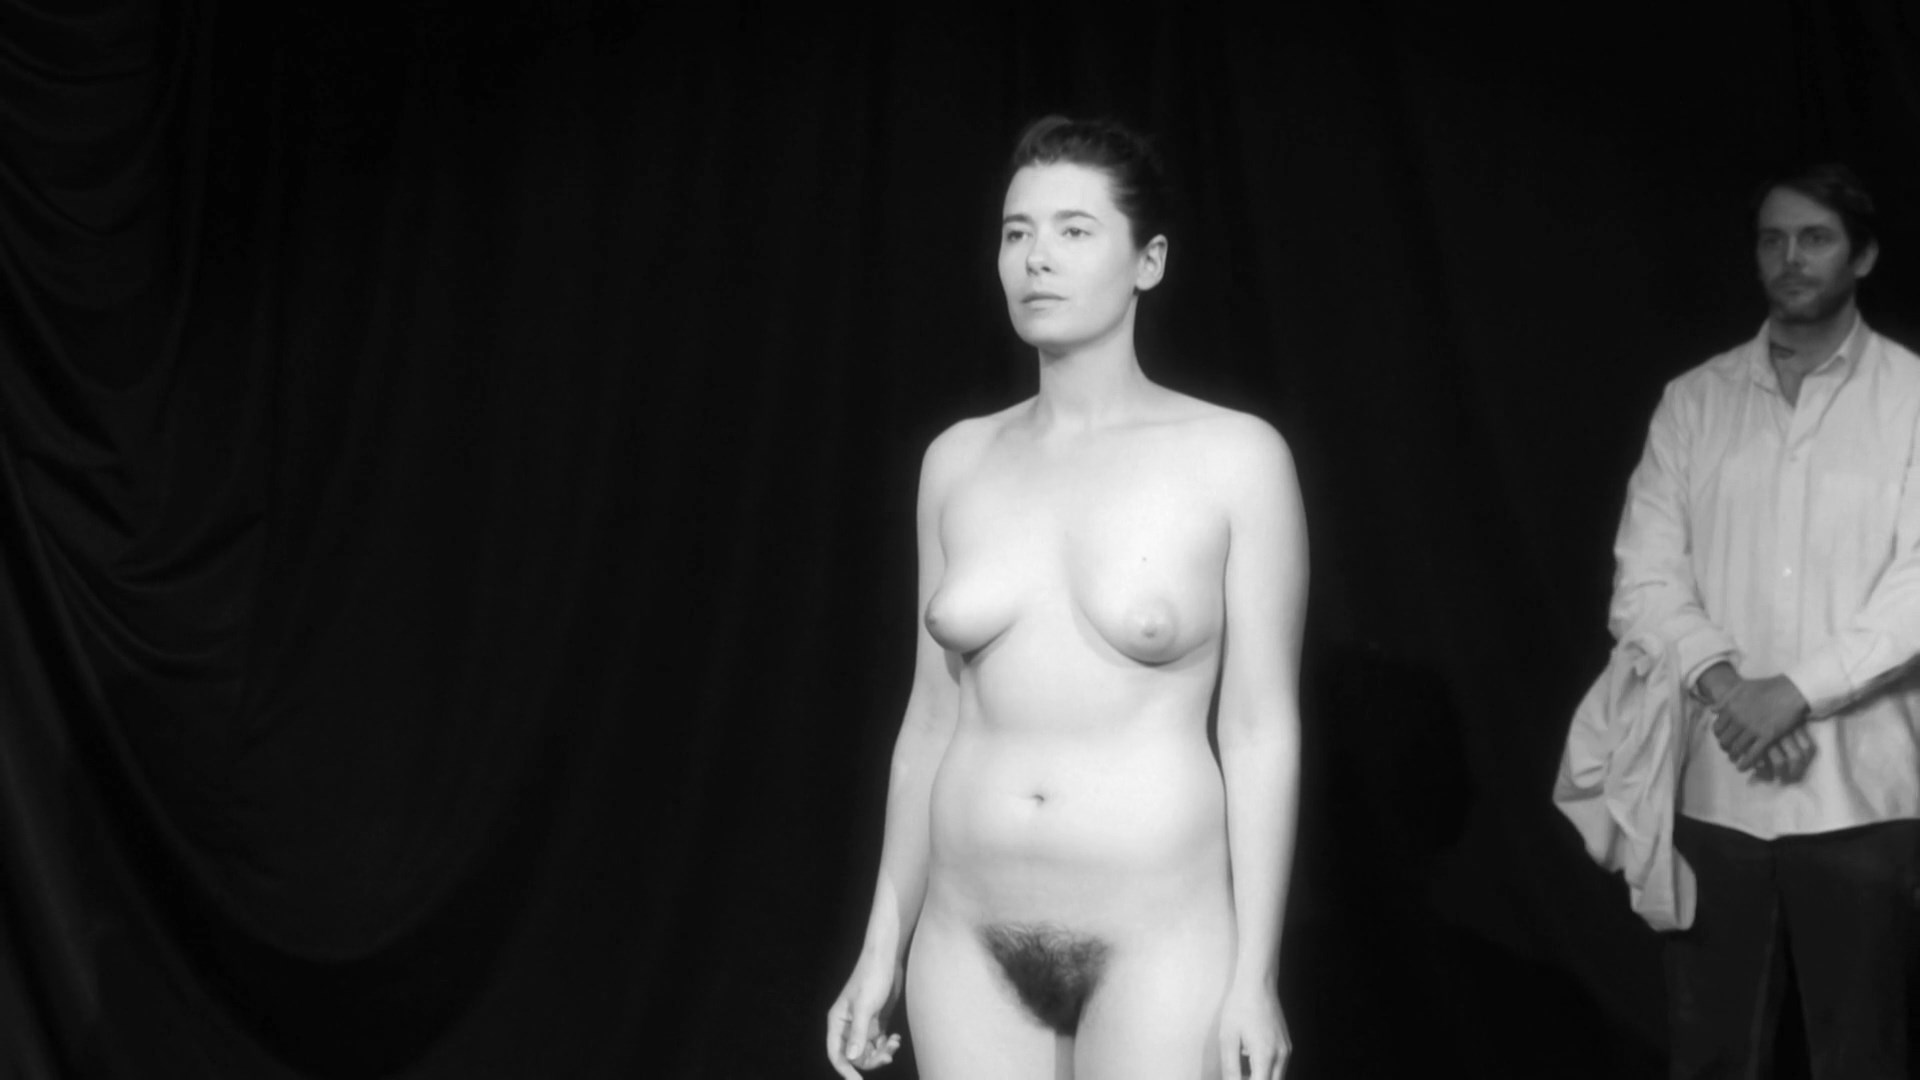 Deborah Jensen nude - You Are Your BodyYou Are Not Your Body (2014)